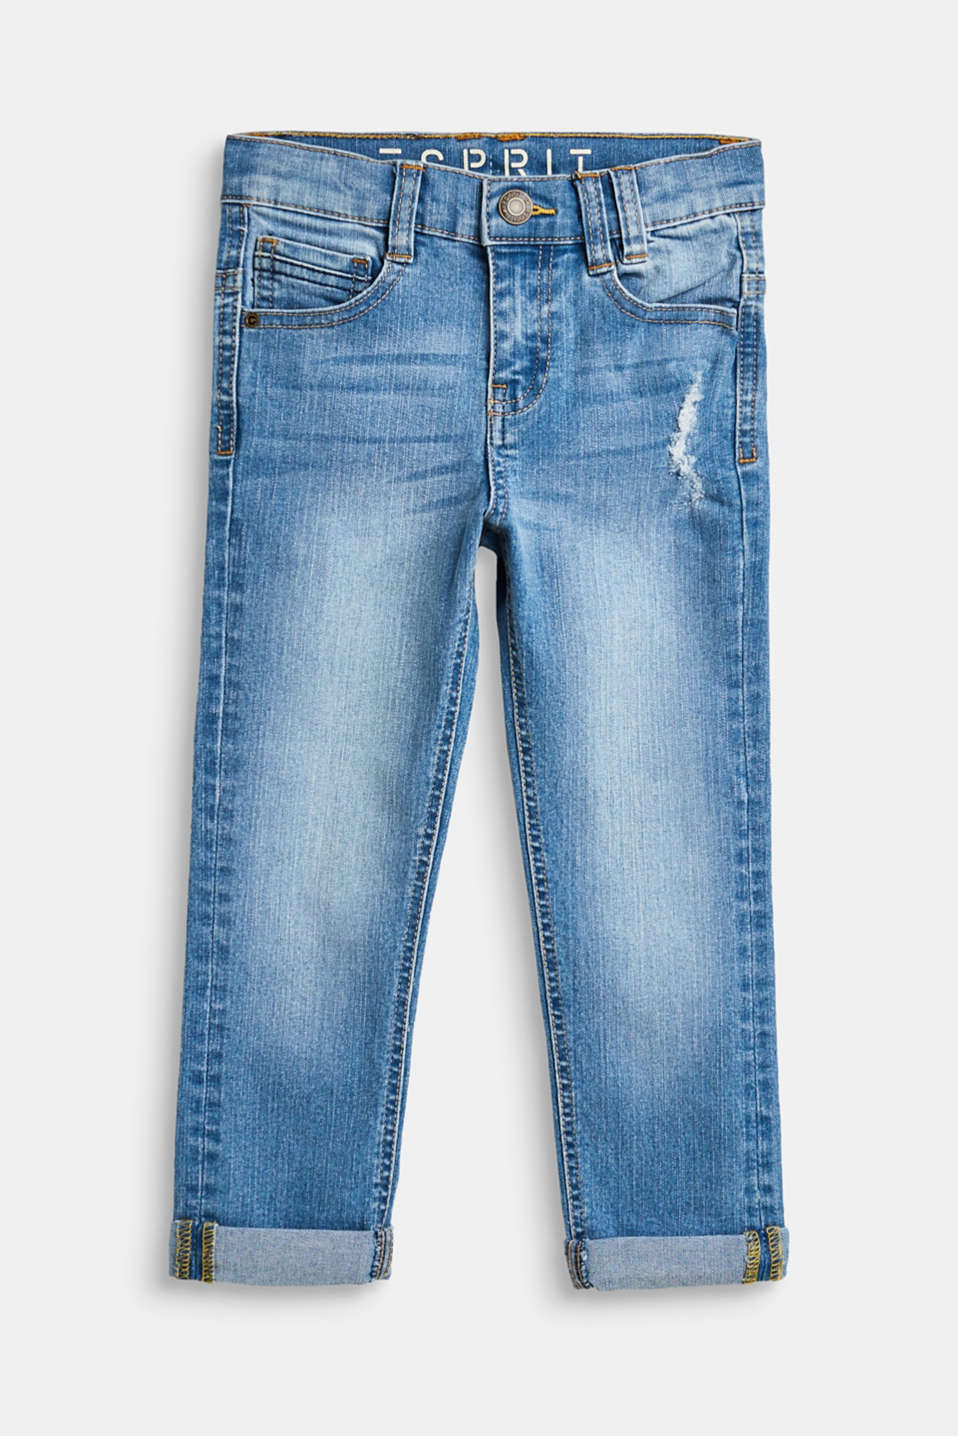 Esprit - Vintage-style stretch jeans, adjustable waistband